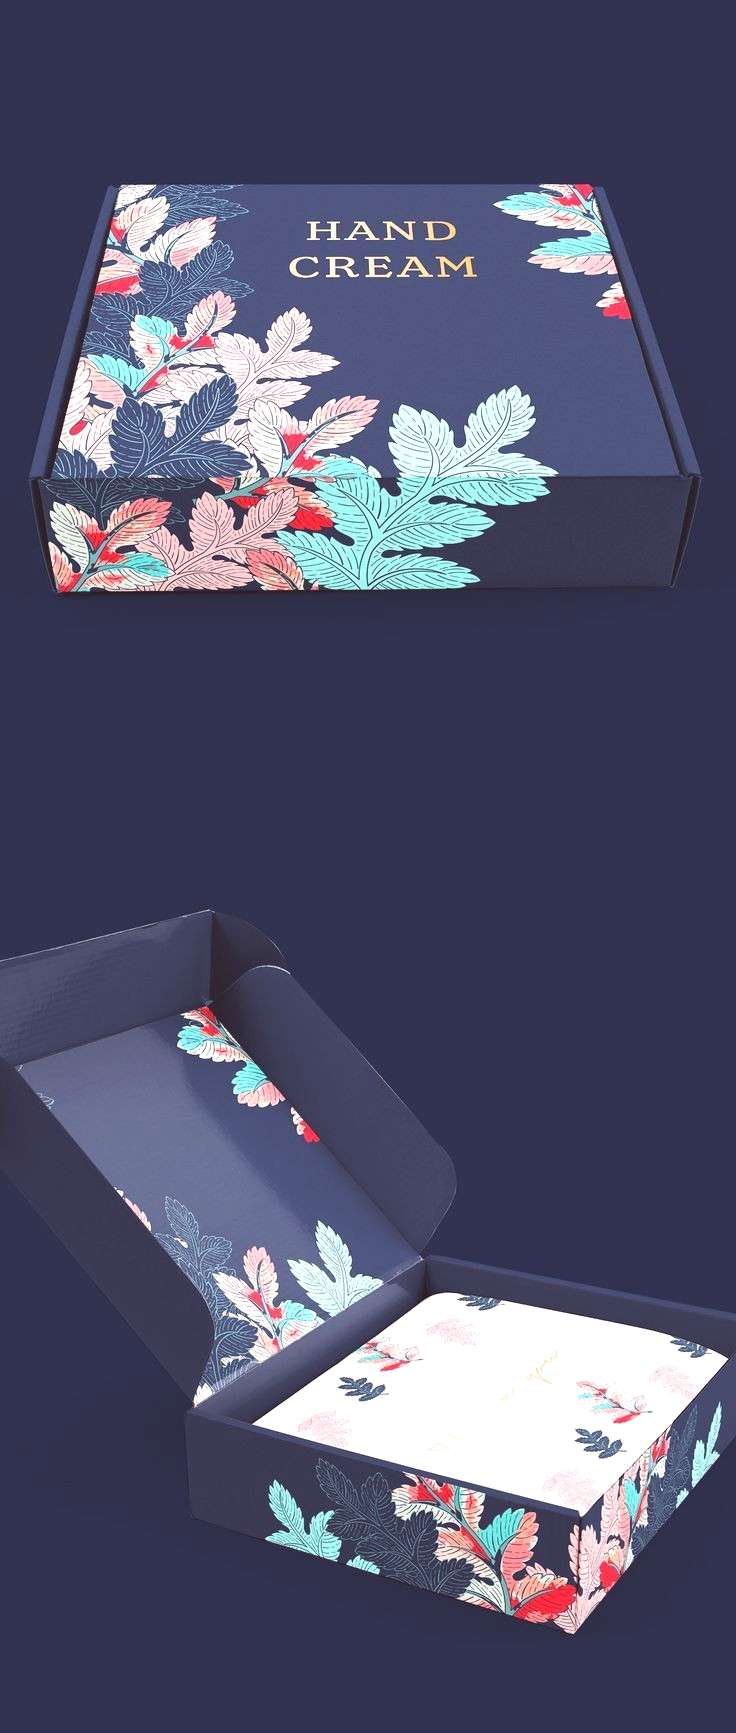 Creative packaging, packaging design ideas and inspiration, floral packaging, box design, graphic d